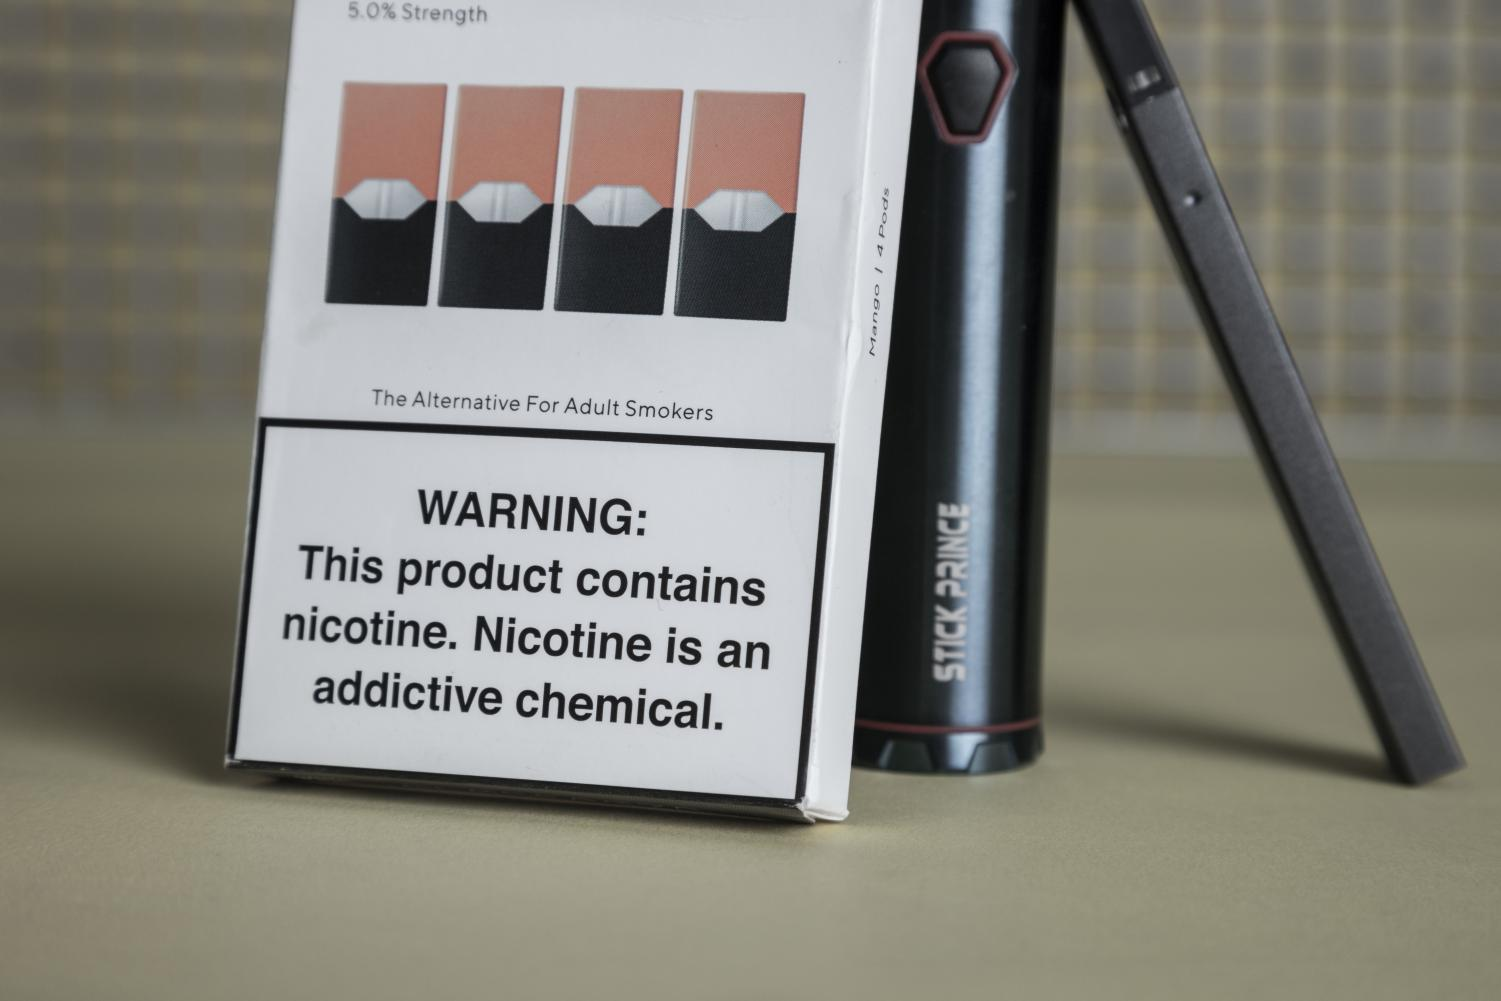 Juul packaging warns about the dangers of nicotine.